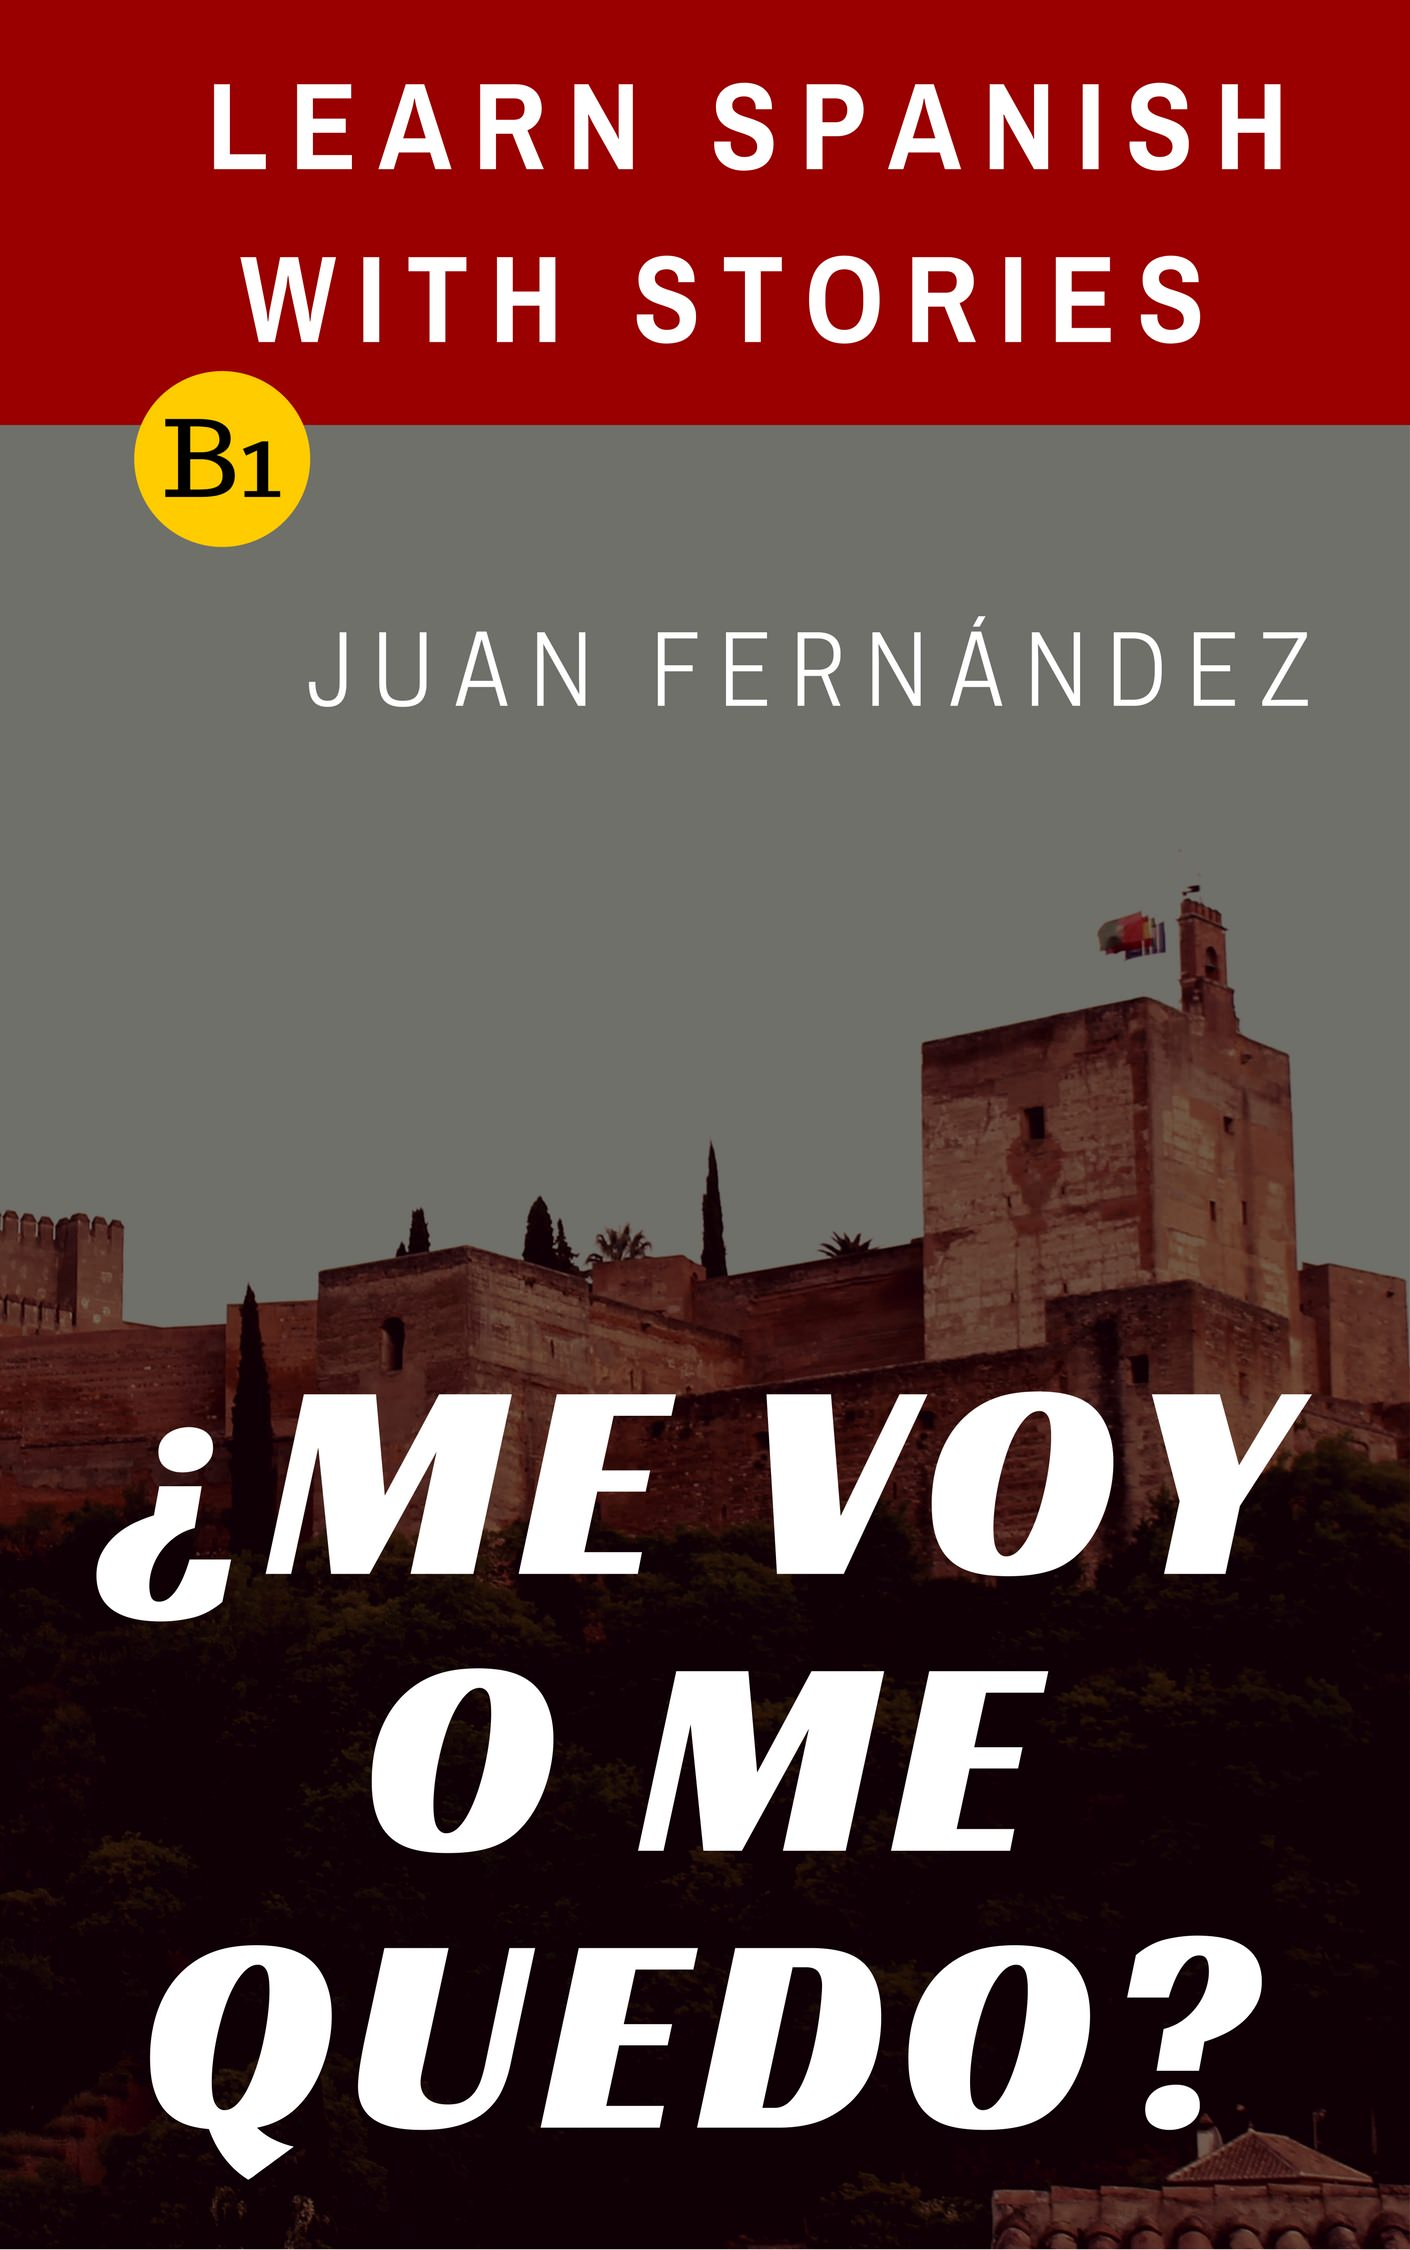 13 Reasons Why Libro Español Me Voy O Me Quedo 1001 Reasons To Learn Spanish